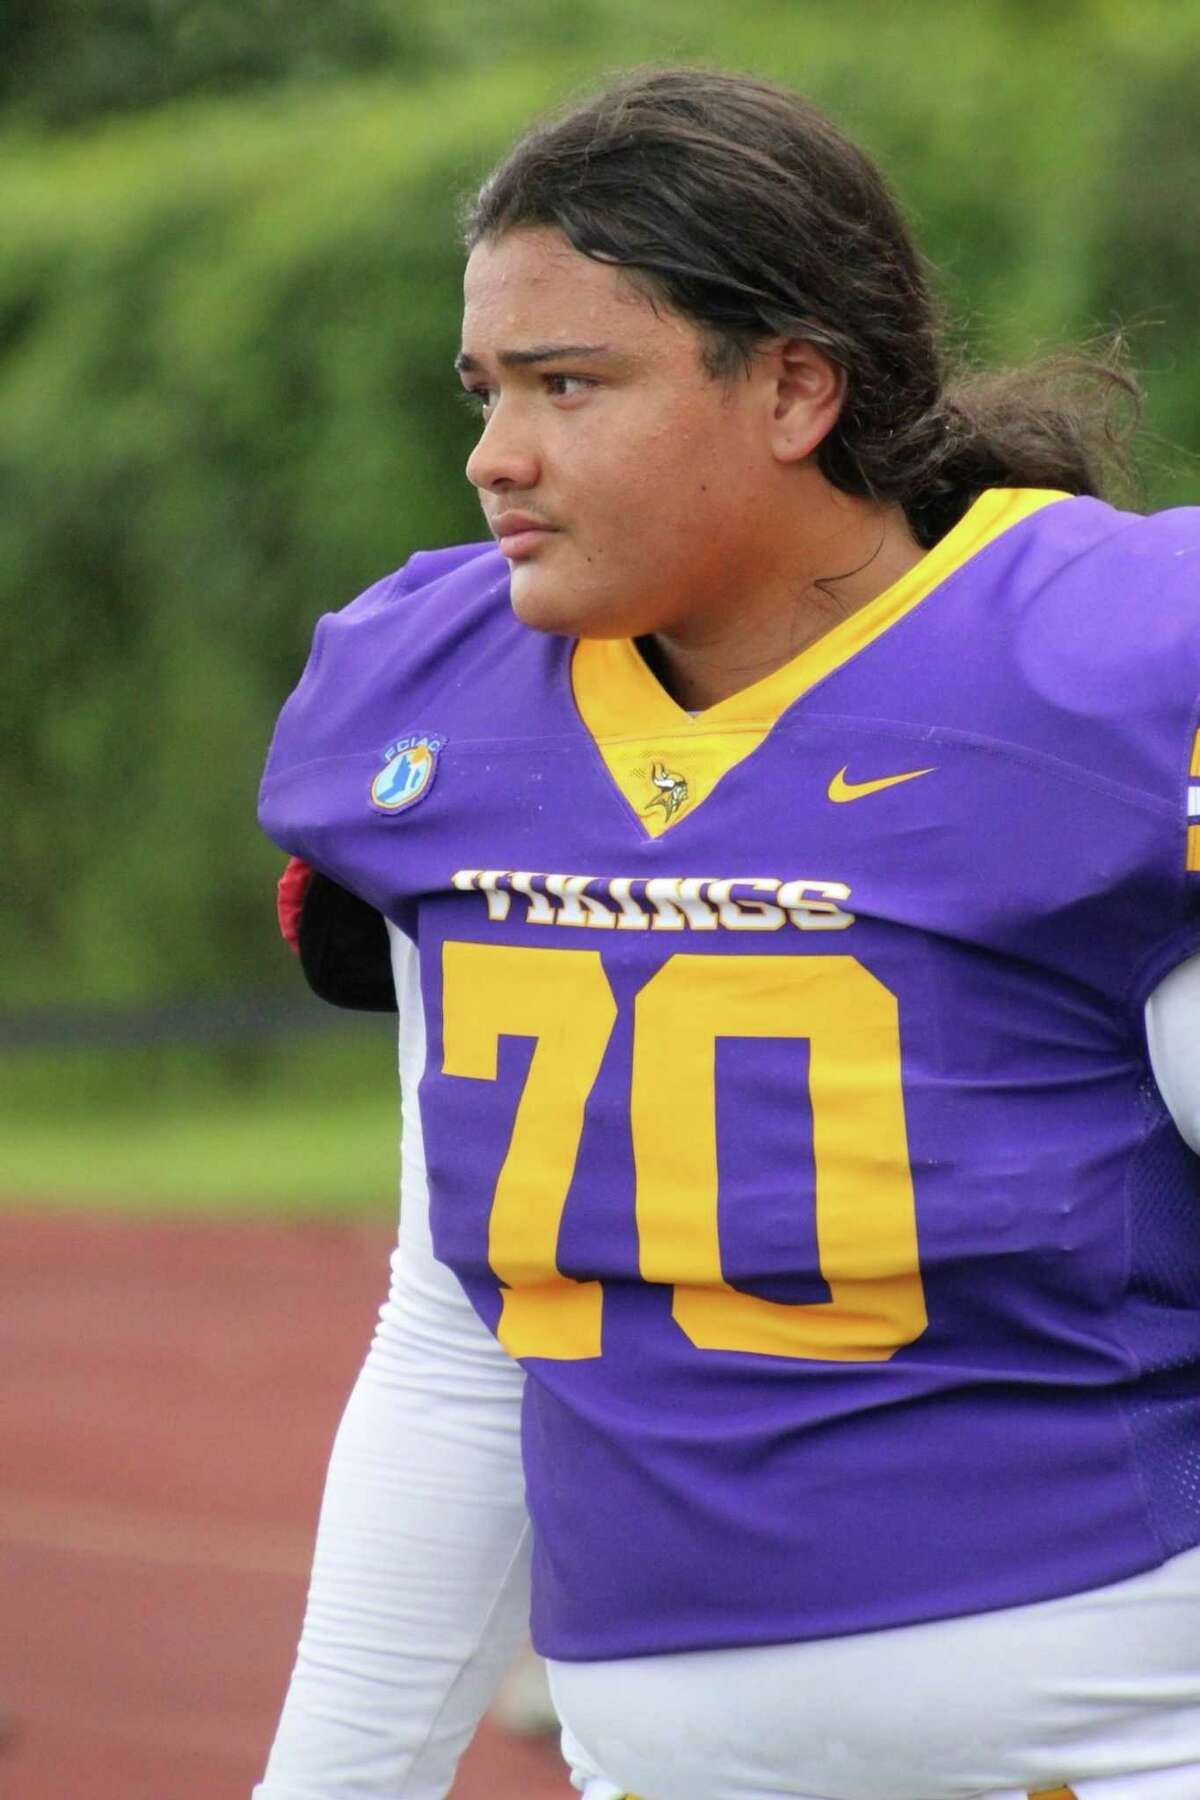 Jordan Martinez, a senior on the Westhill High School football team, was killed late Saturday night in a single-car accident in Greenwich.